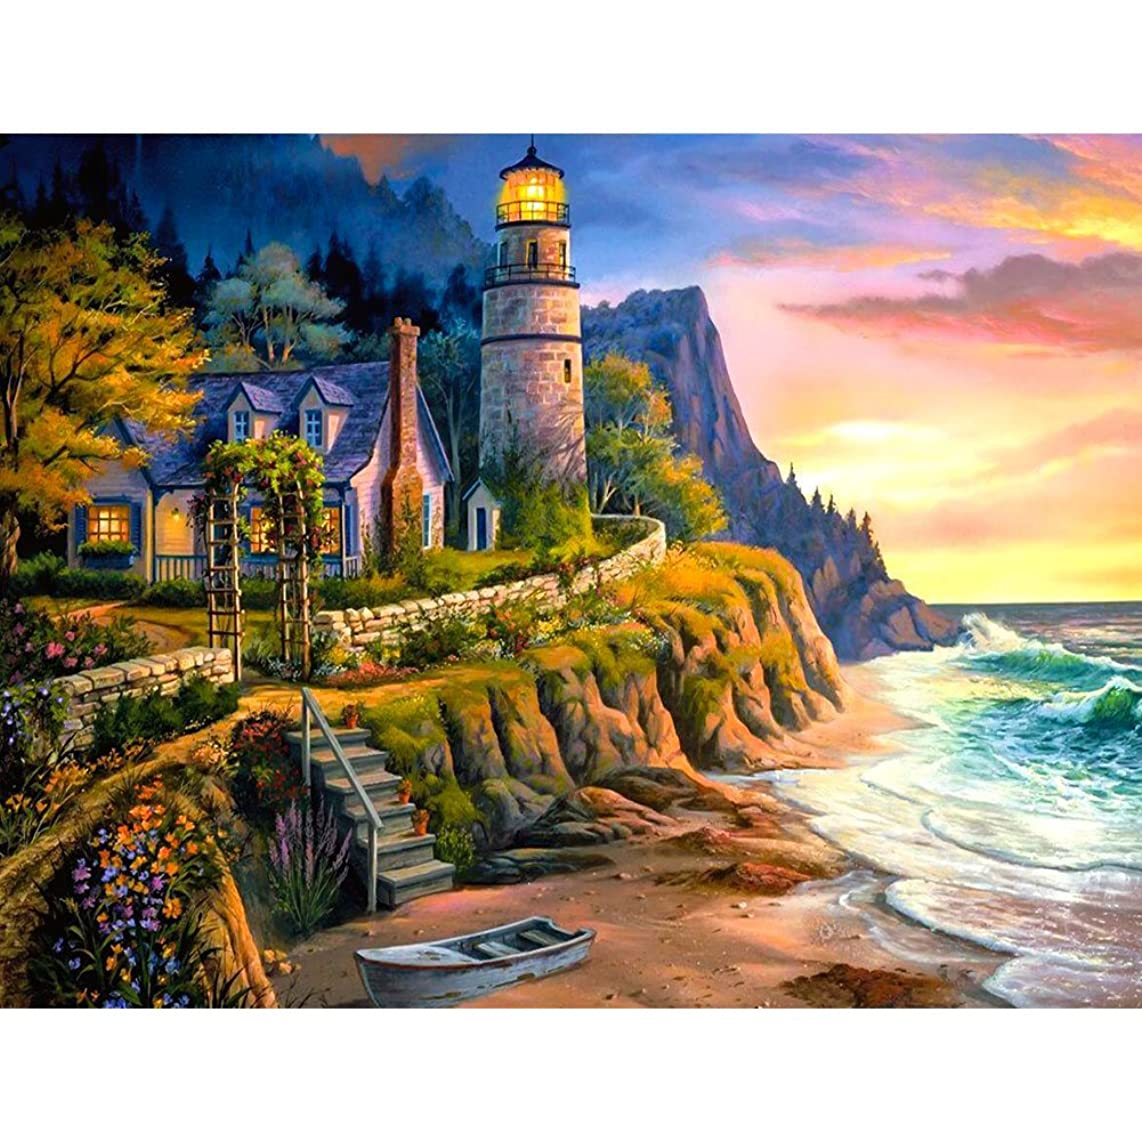 UPMALL DIY 5D Diamond Painting by Number Kits, Full Drill Crystal Rhinestone Embroidery Pictures Arts Craft for Home Wall Decoration Seaside Castle 15.75×11.81 Inches